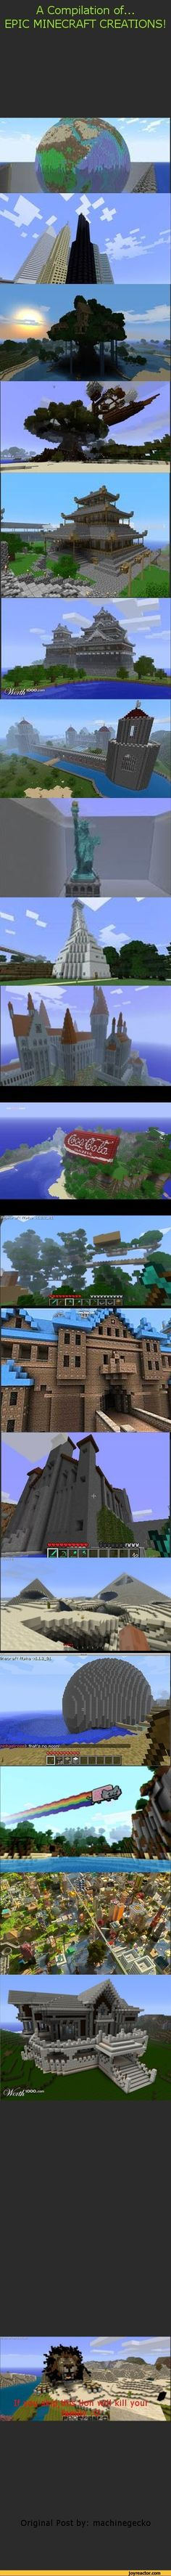 A Compilation of...EPIC MINECRAFT CREATIONS!Original Post by: machinegecko / funny pictures / funny pictures best jokes: comics, images, video, humor, gif animation - i lold